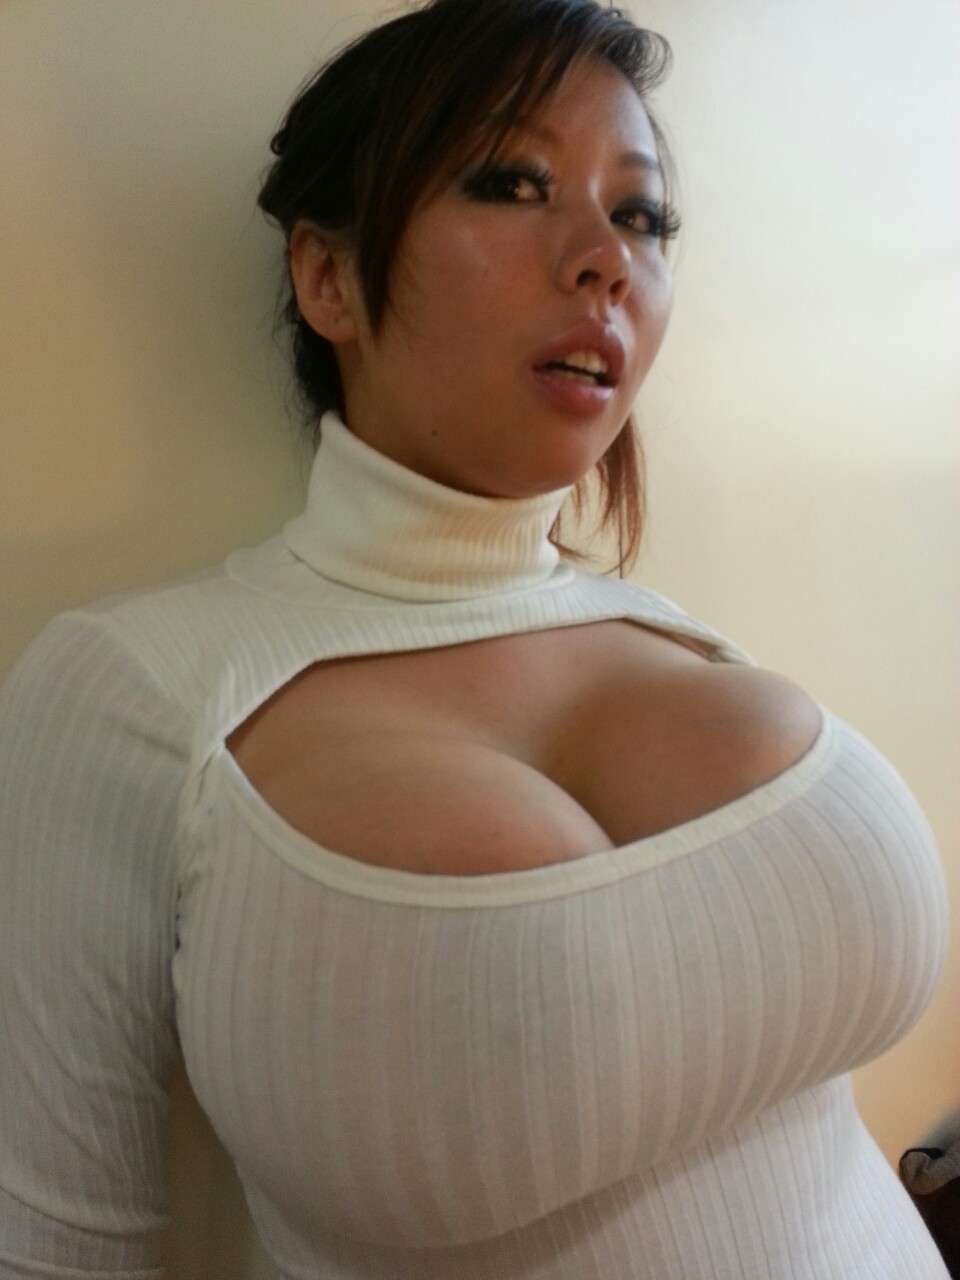 huge tits in a small shirt